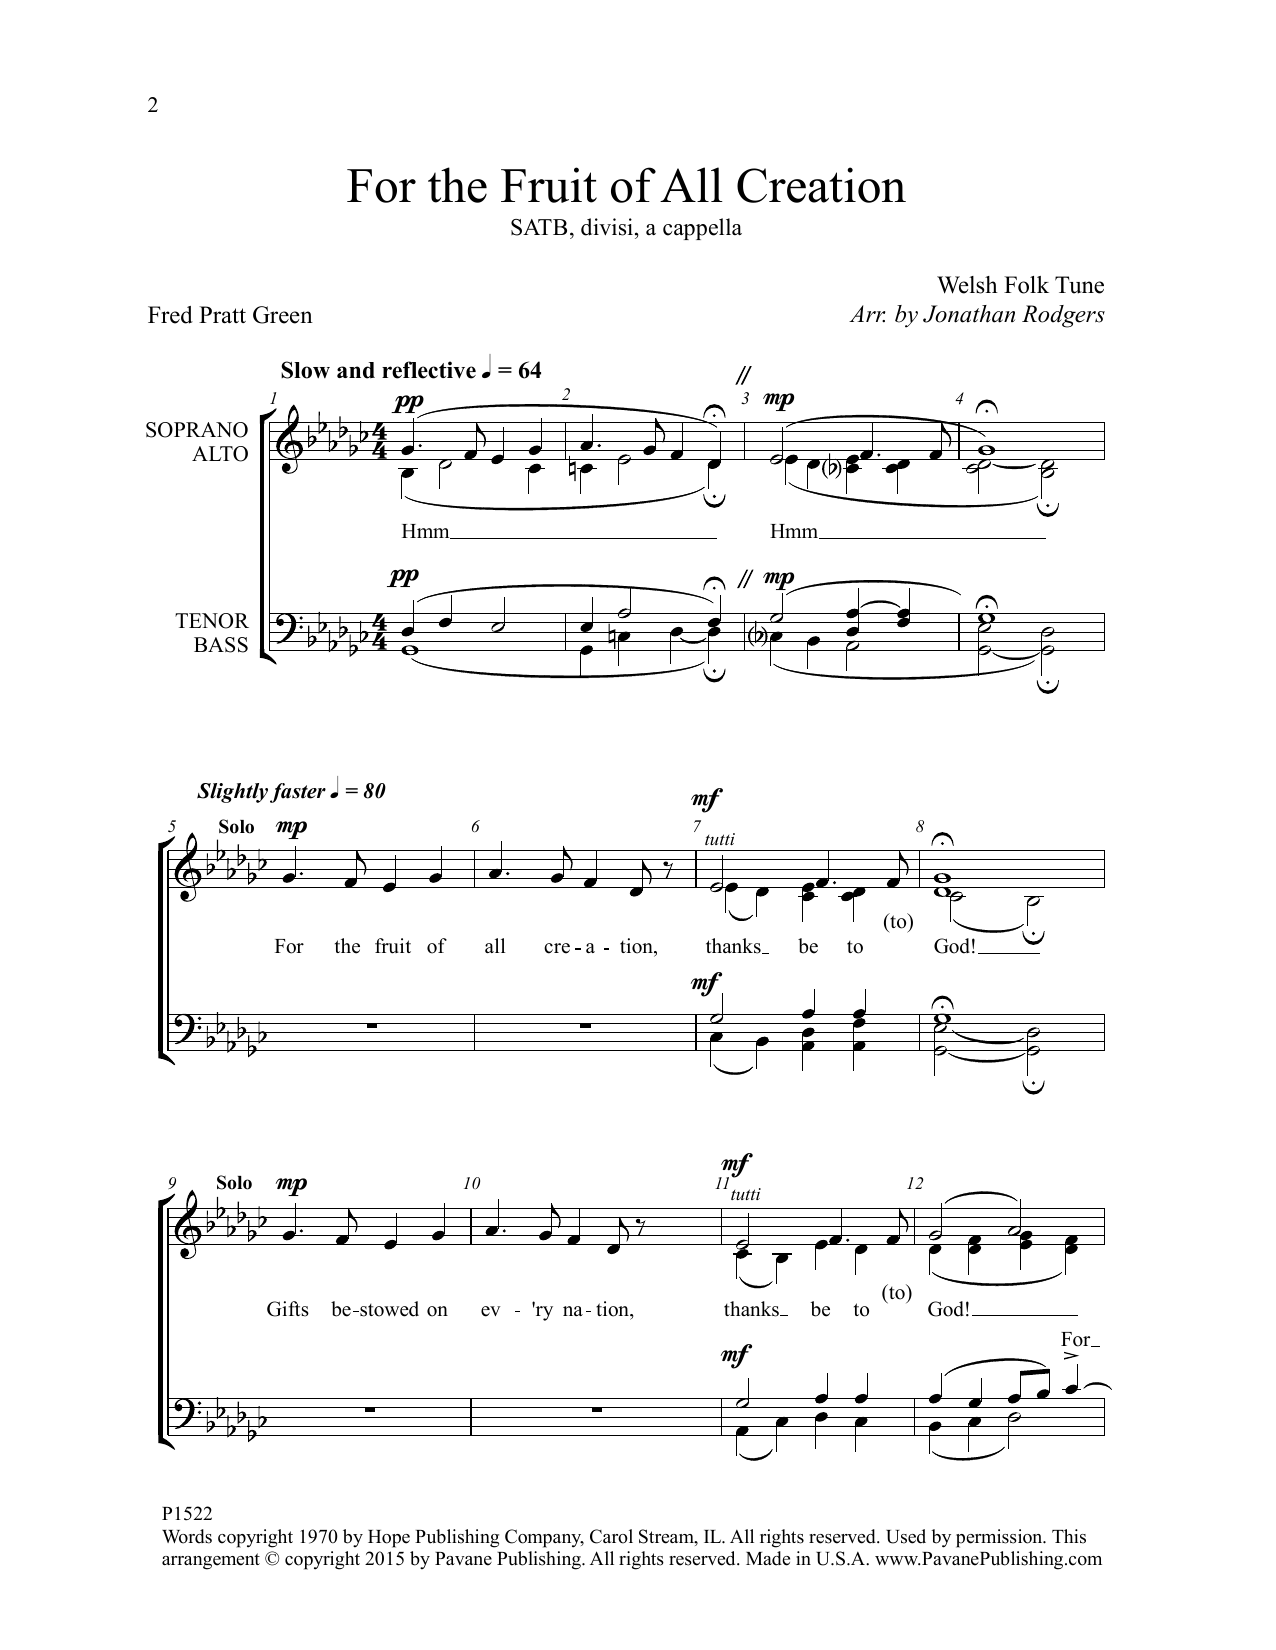 For the Fruit of All Creation Sheet Music